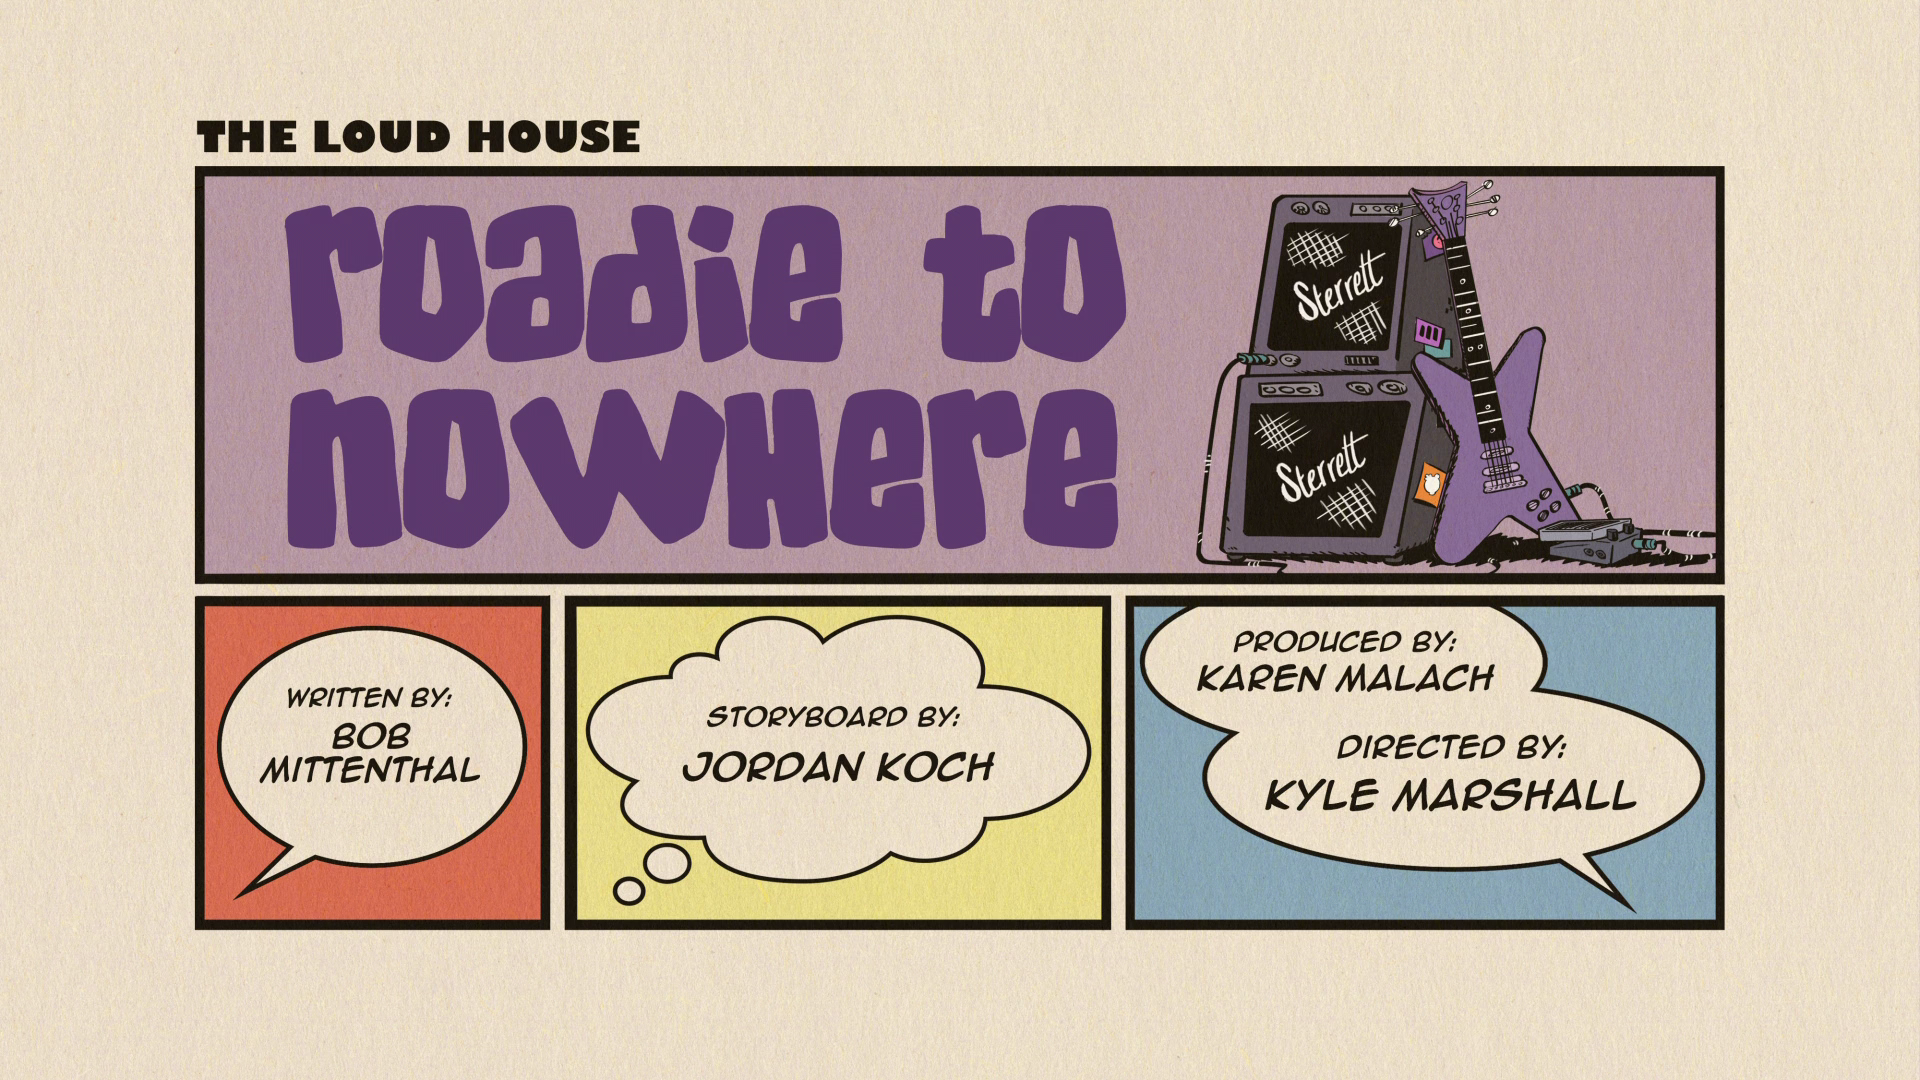 Roadie to Nowhere | The Loud House Encyclopedia | FANDOM powered by